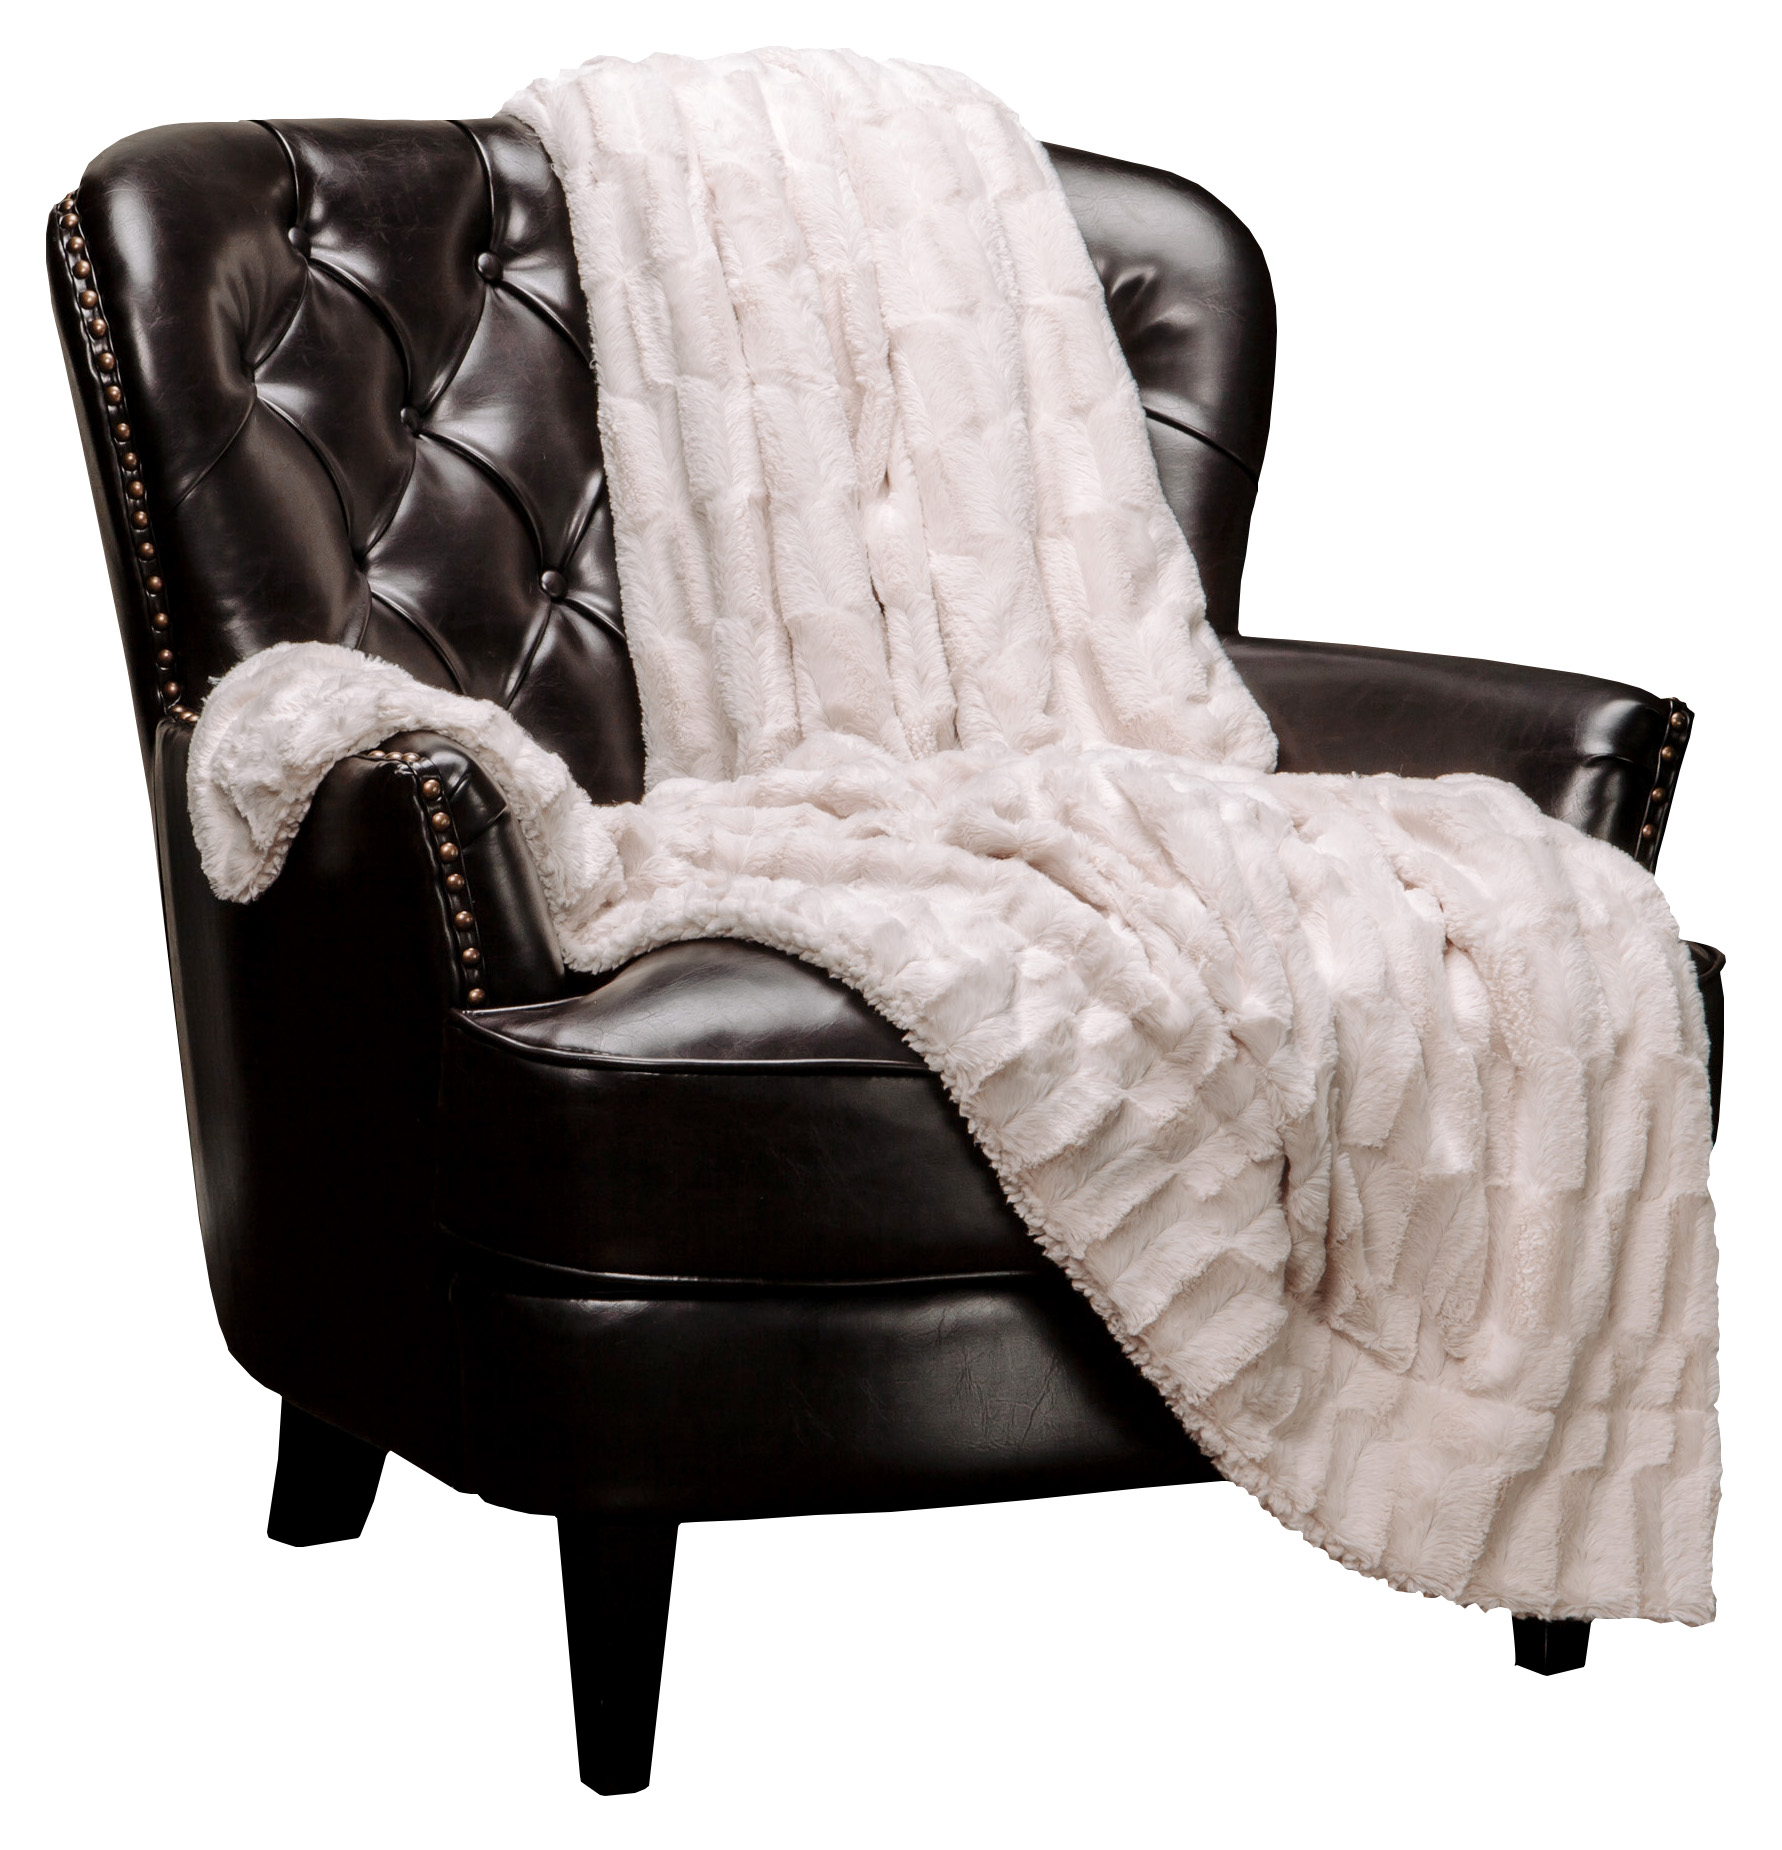 Chanasya Super Soft Cozy Sherpa Fuzzy Fur Warm Throw Blanket by Purchase Corner LLC